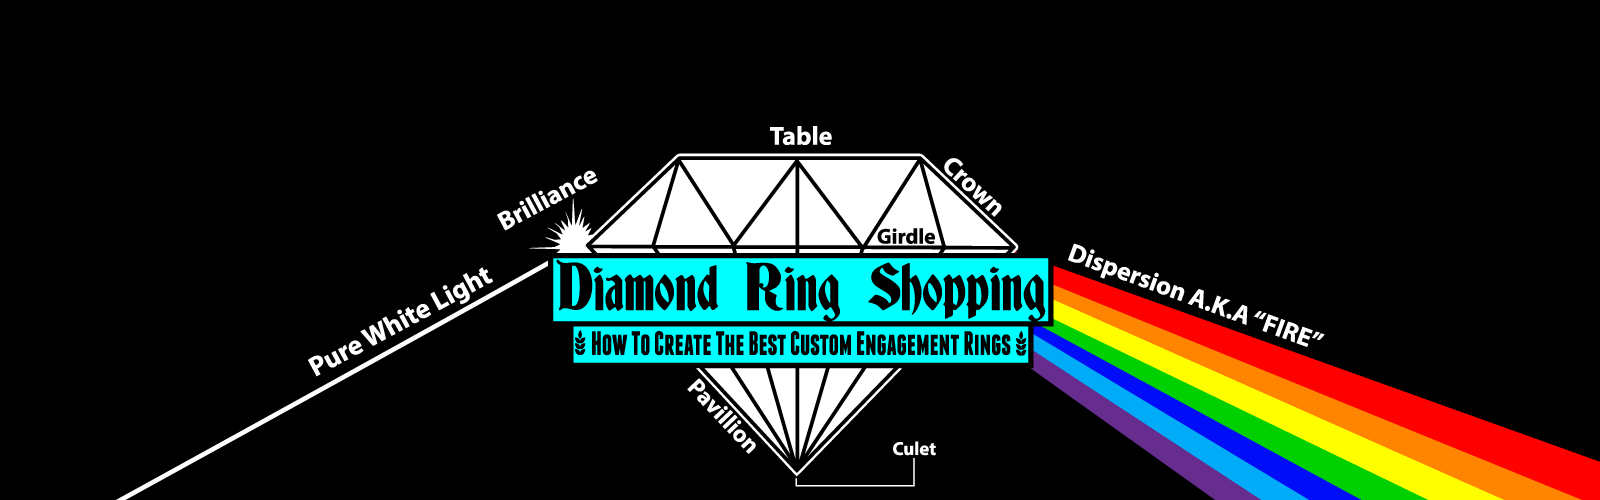 1 Carat Diamond Ring Shopping Tips Privacy Policy